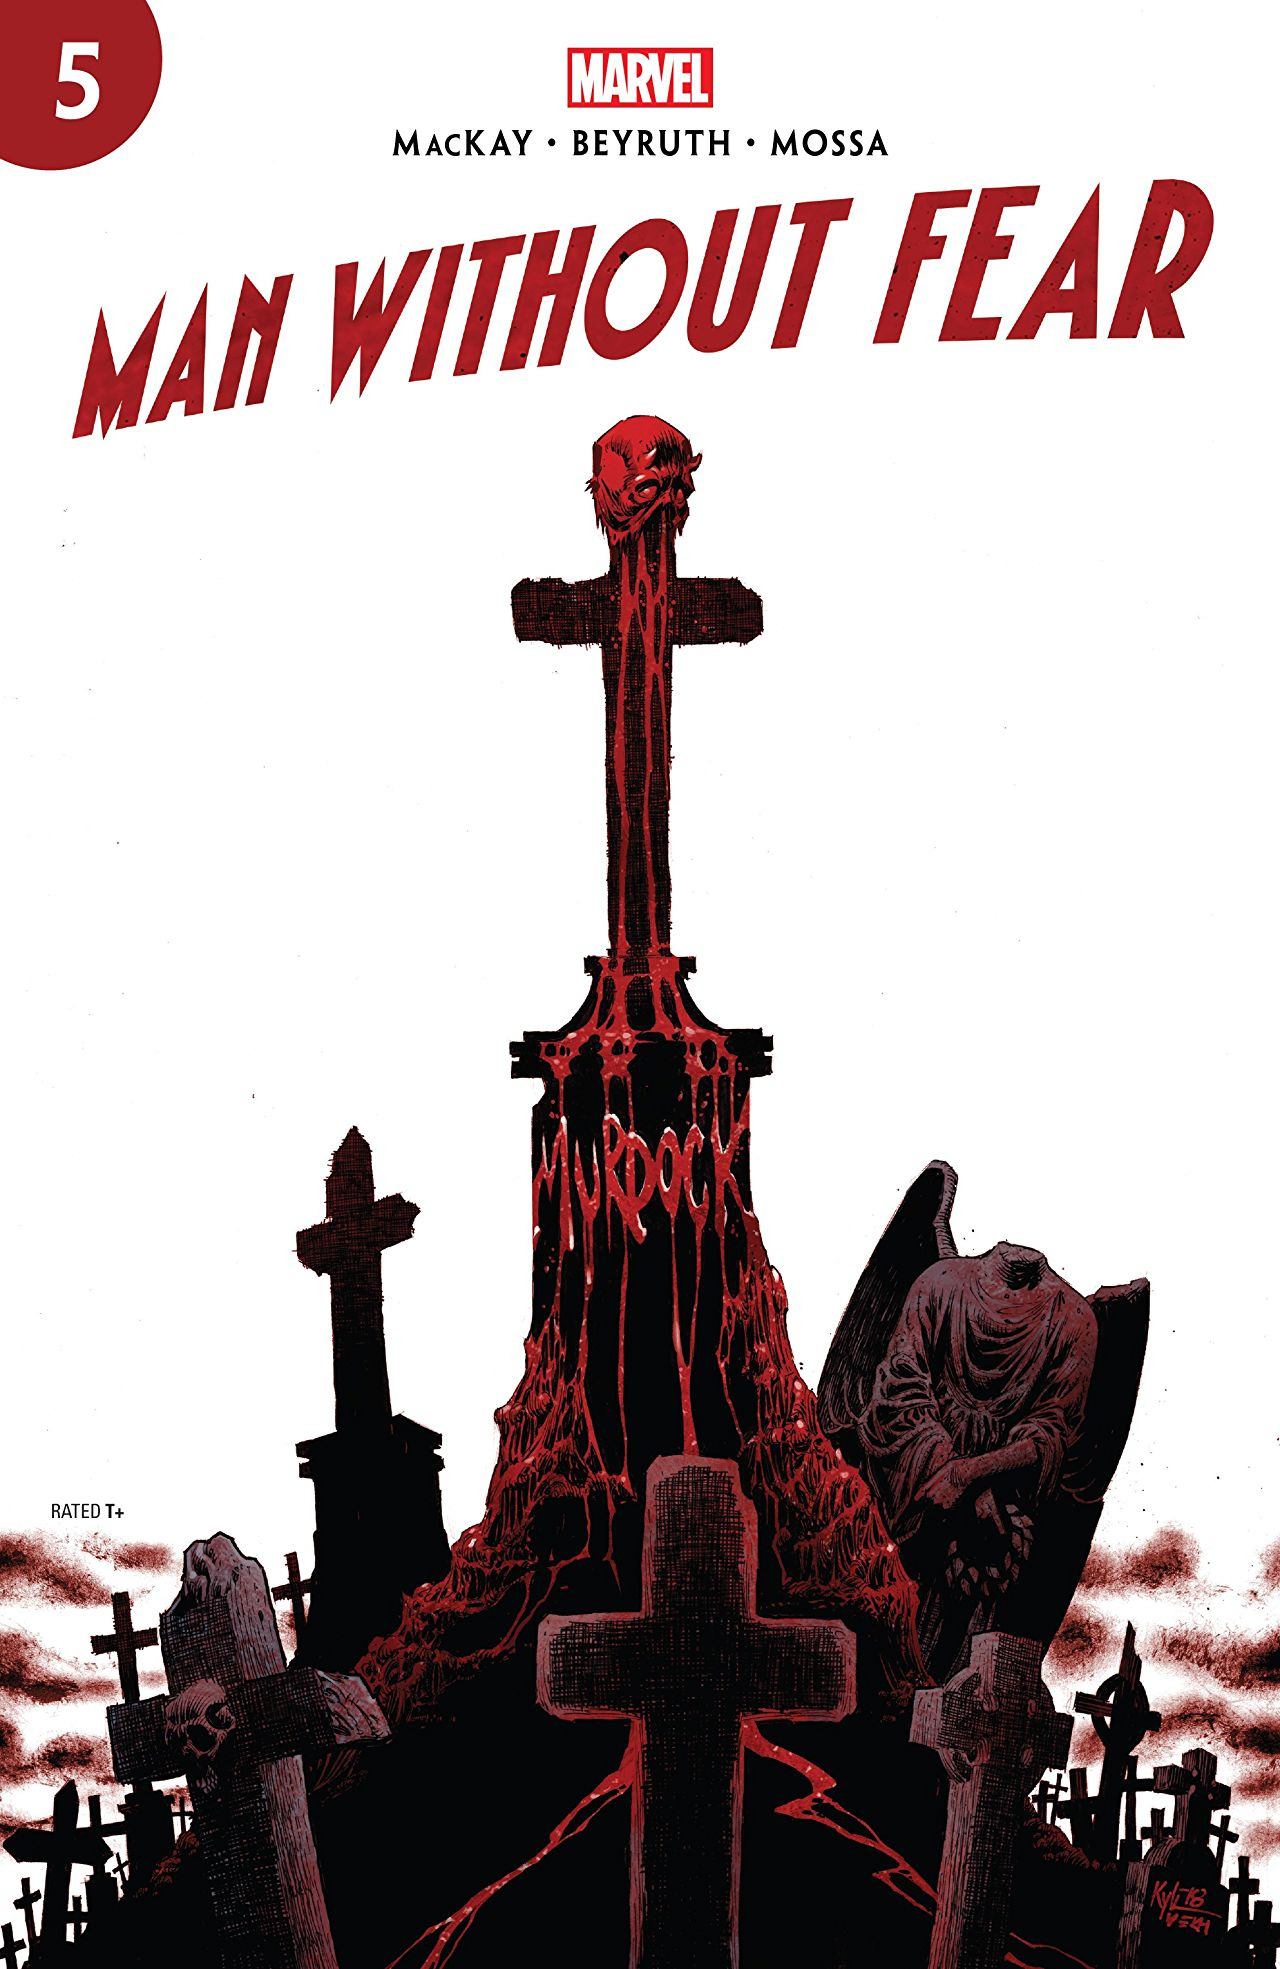 Marvel Preview: Man Without Fear #5